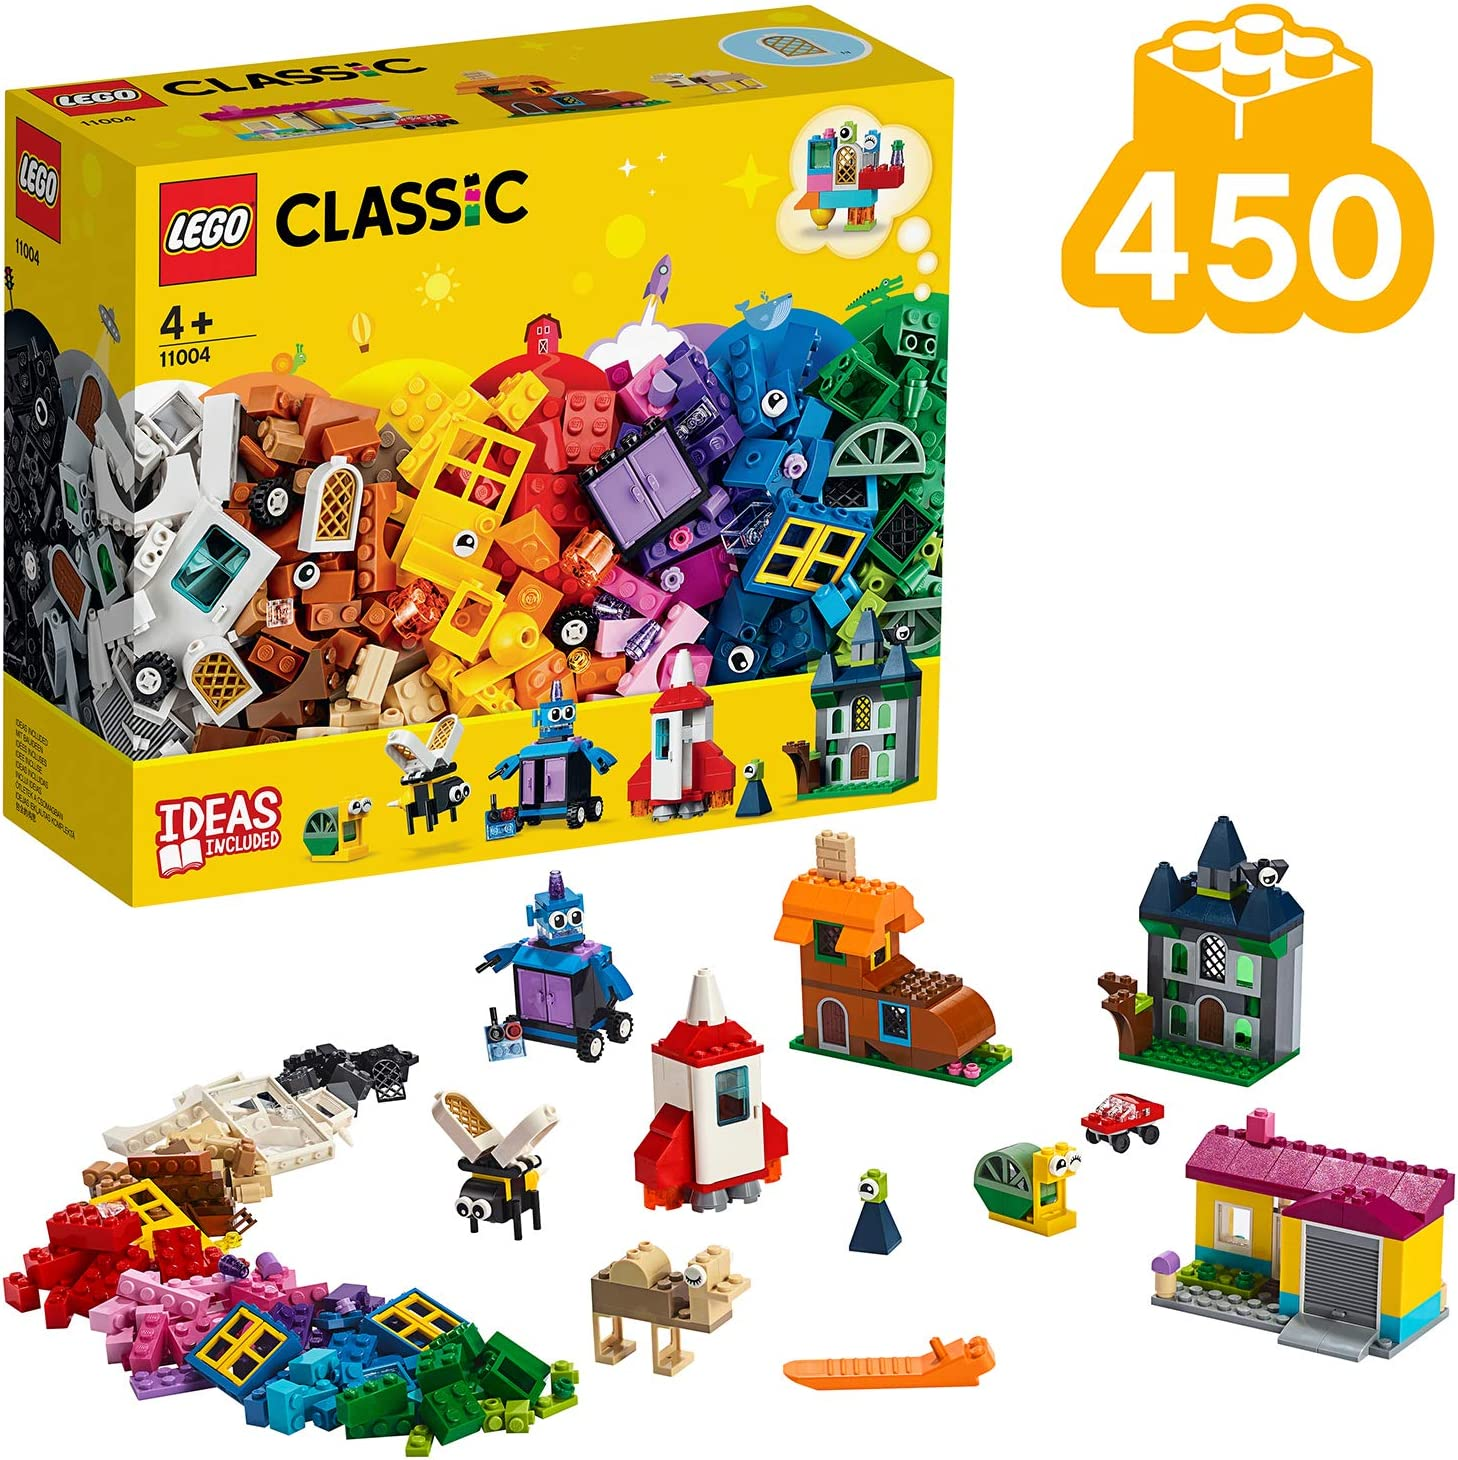 LEGO 11004 Classic Windows of Creativity Brickset, Fun Colourful Toy Bricks